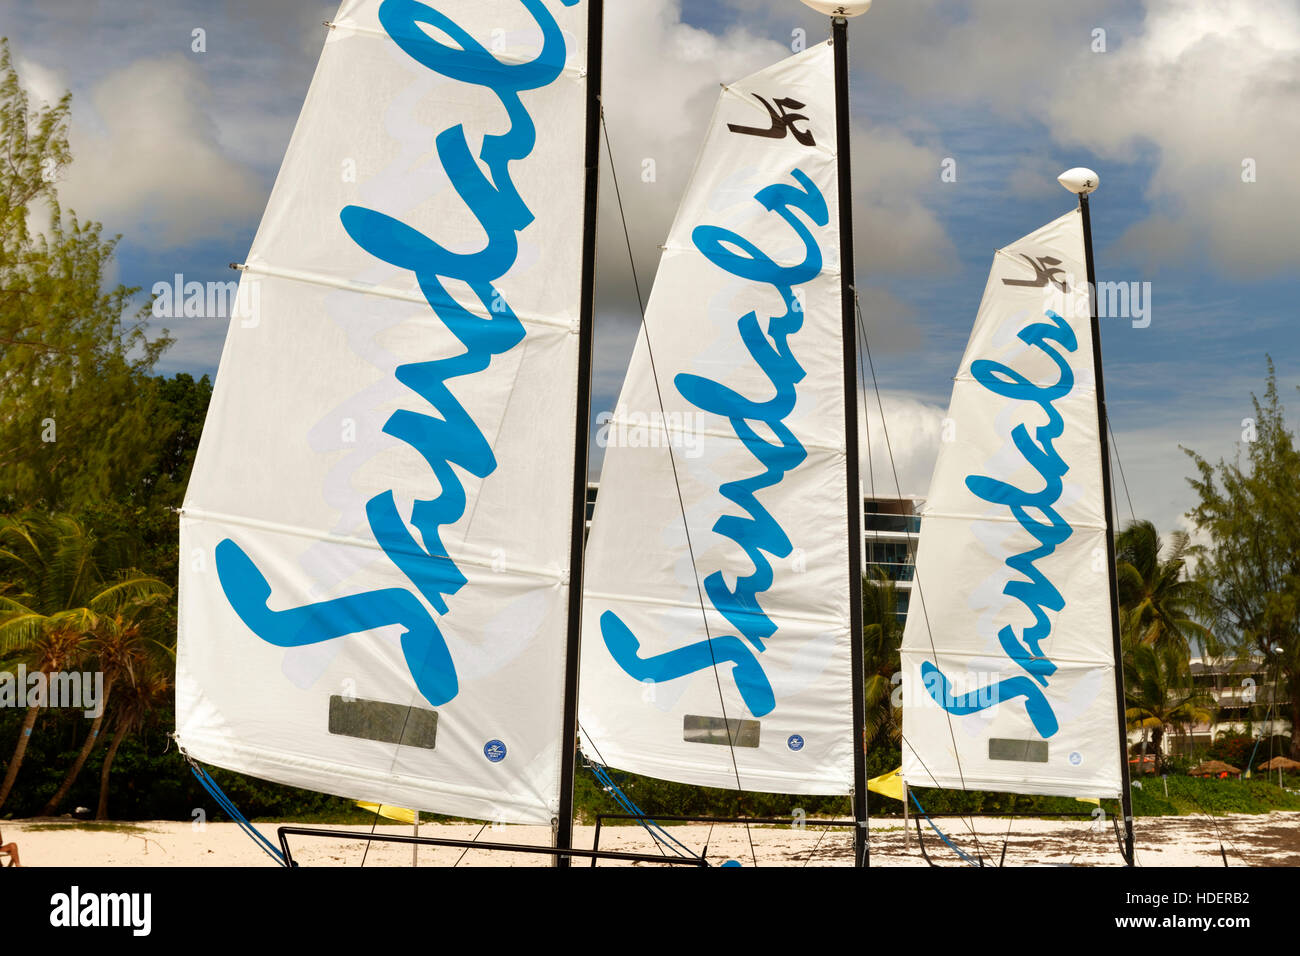 Sails of the Sandals Beach Resort Hobie Cats. - Stock Image